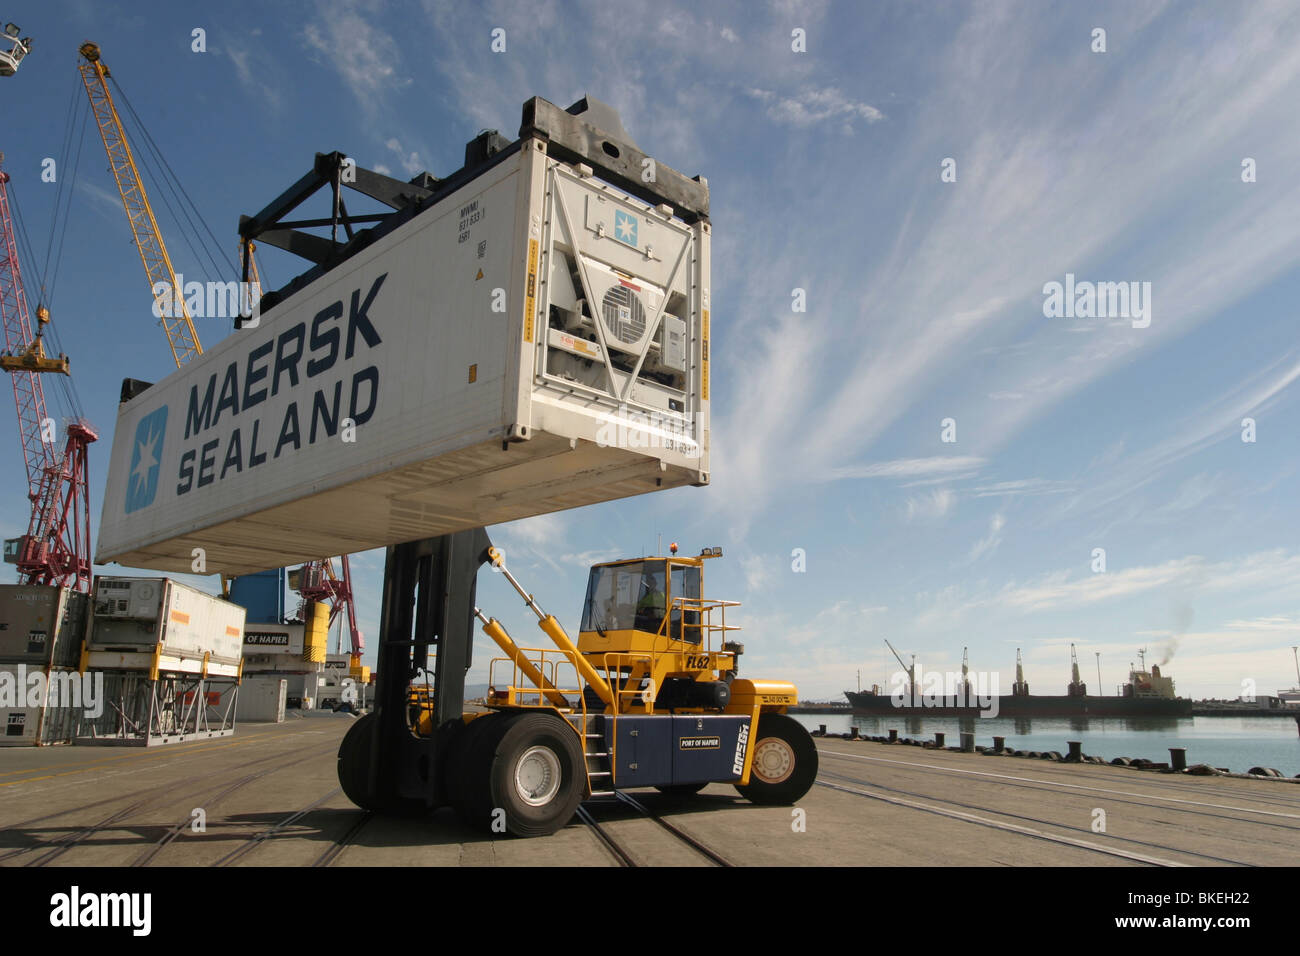 Giant forklift lifts moves Maersk container at Port of Napier new zealand - Stock Image